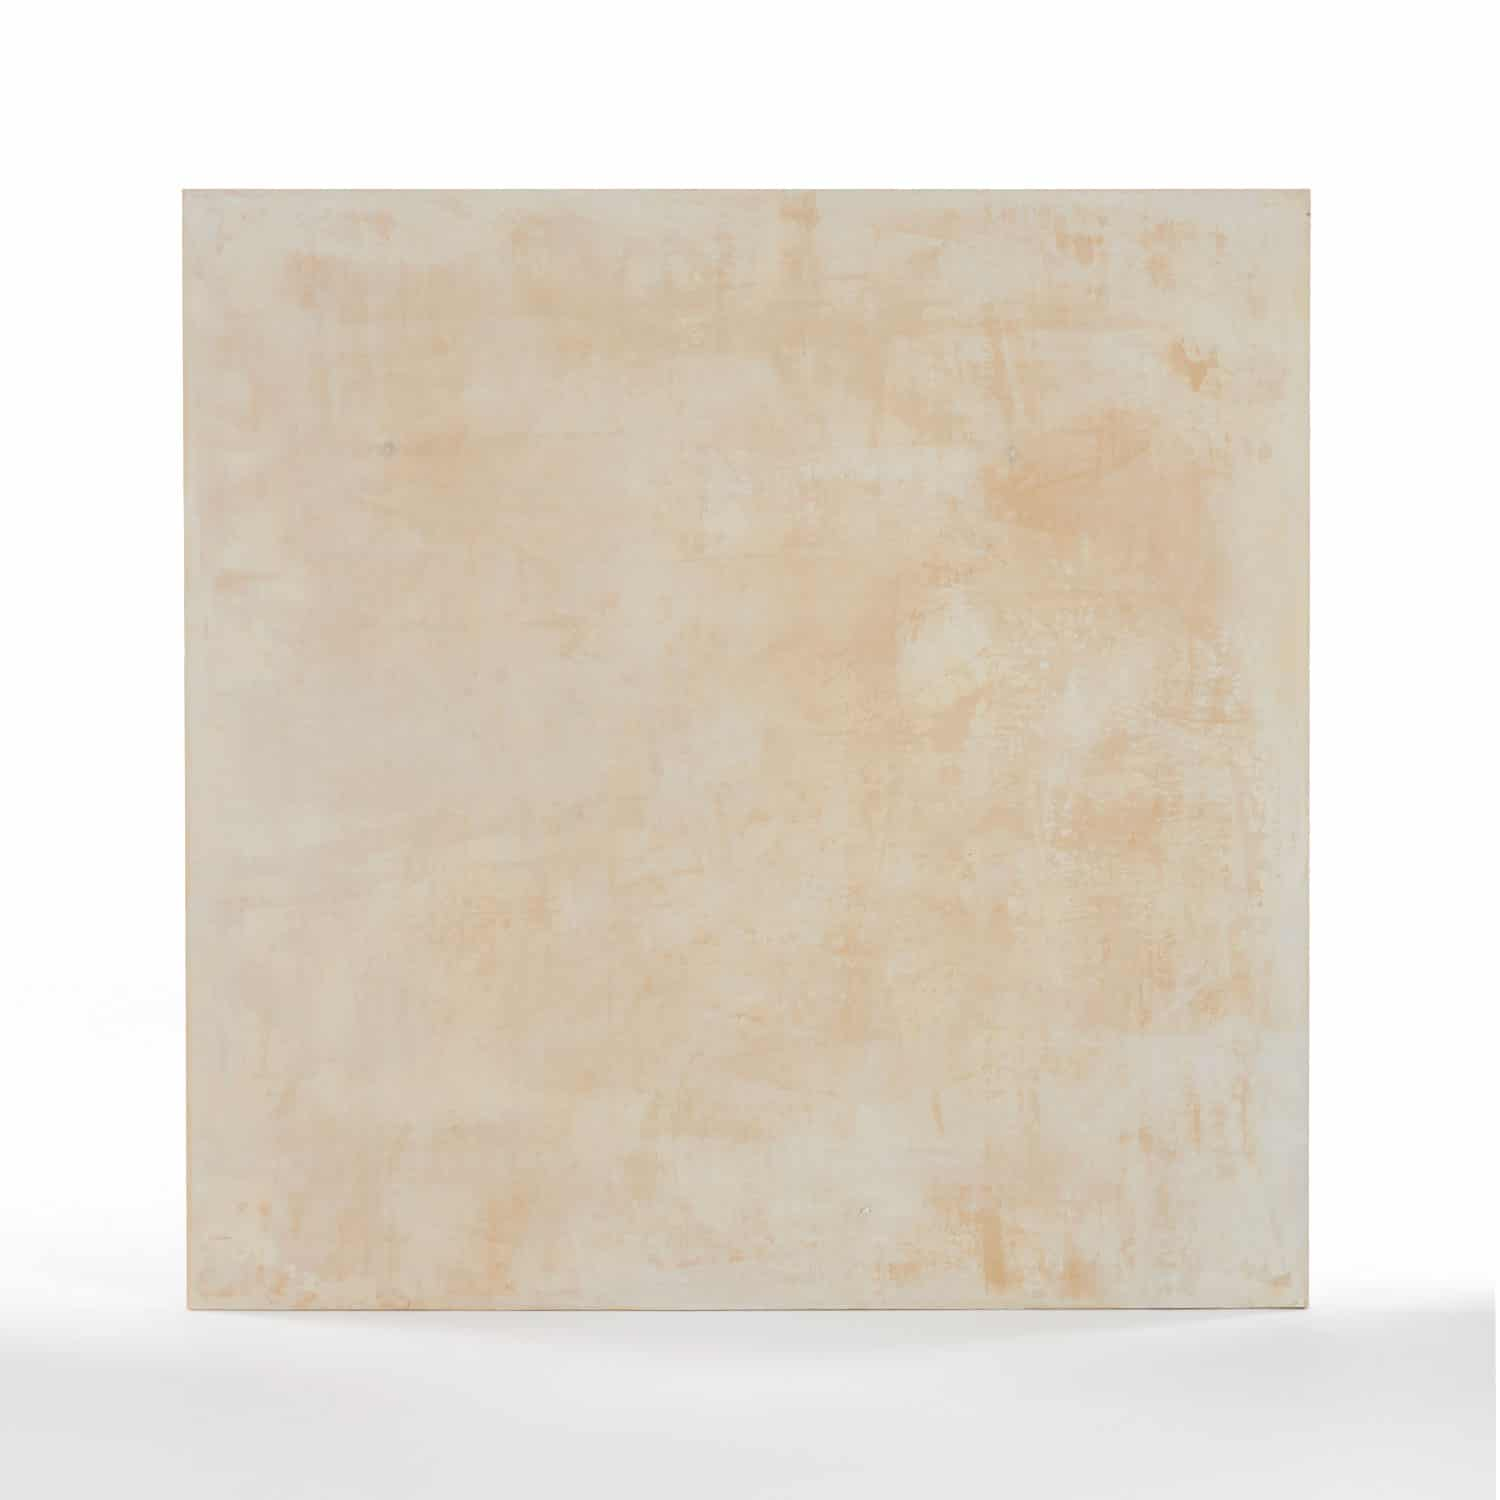 Custom Painted Surface No 21 Light Brown